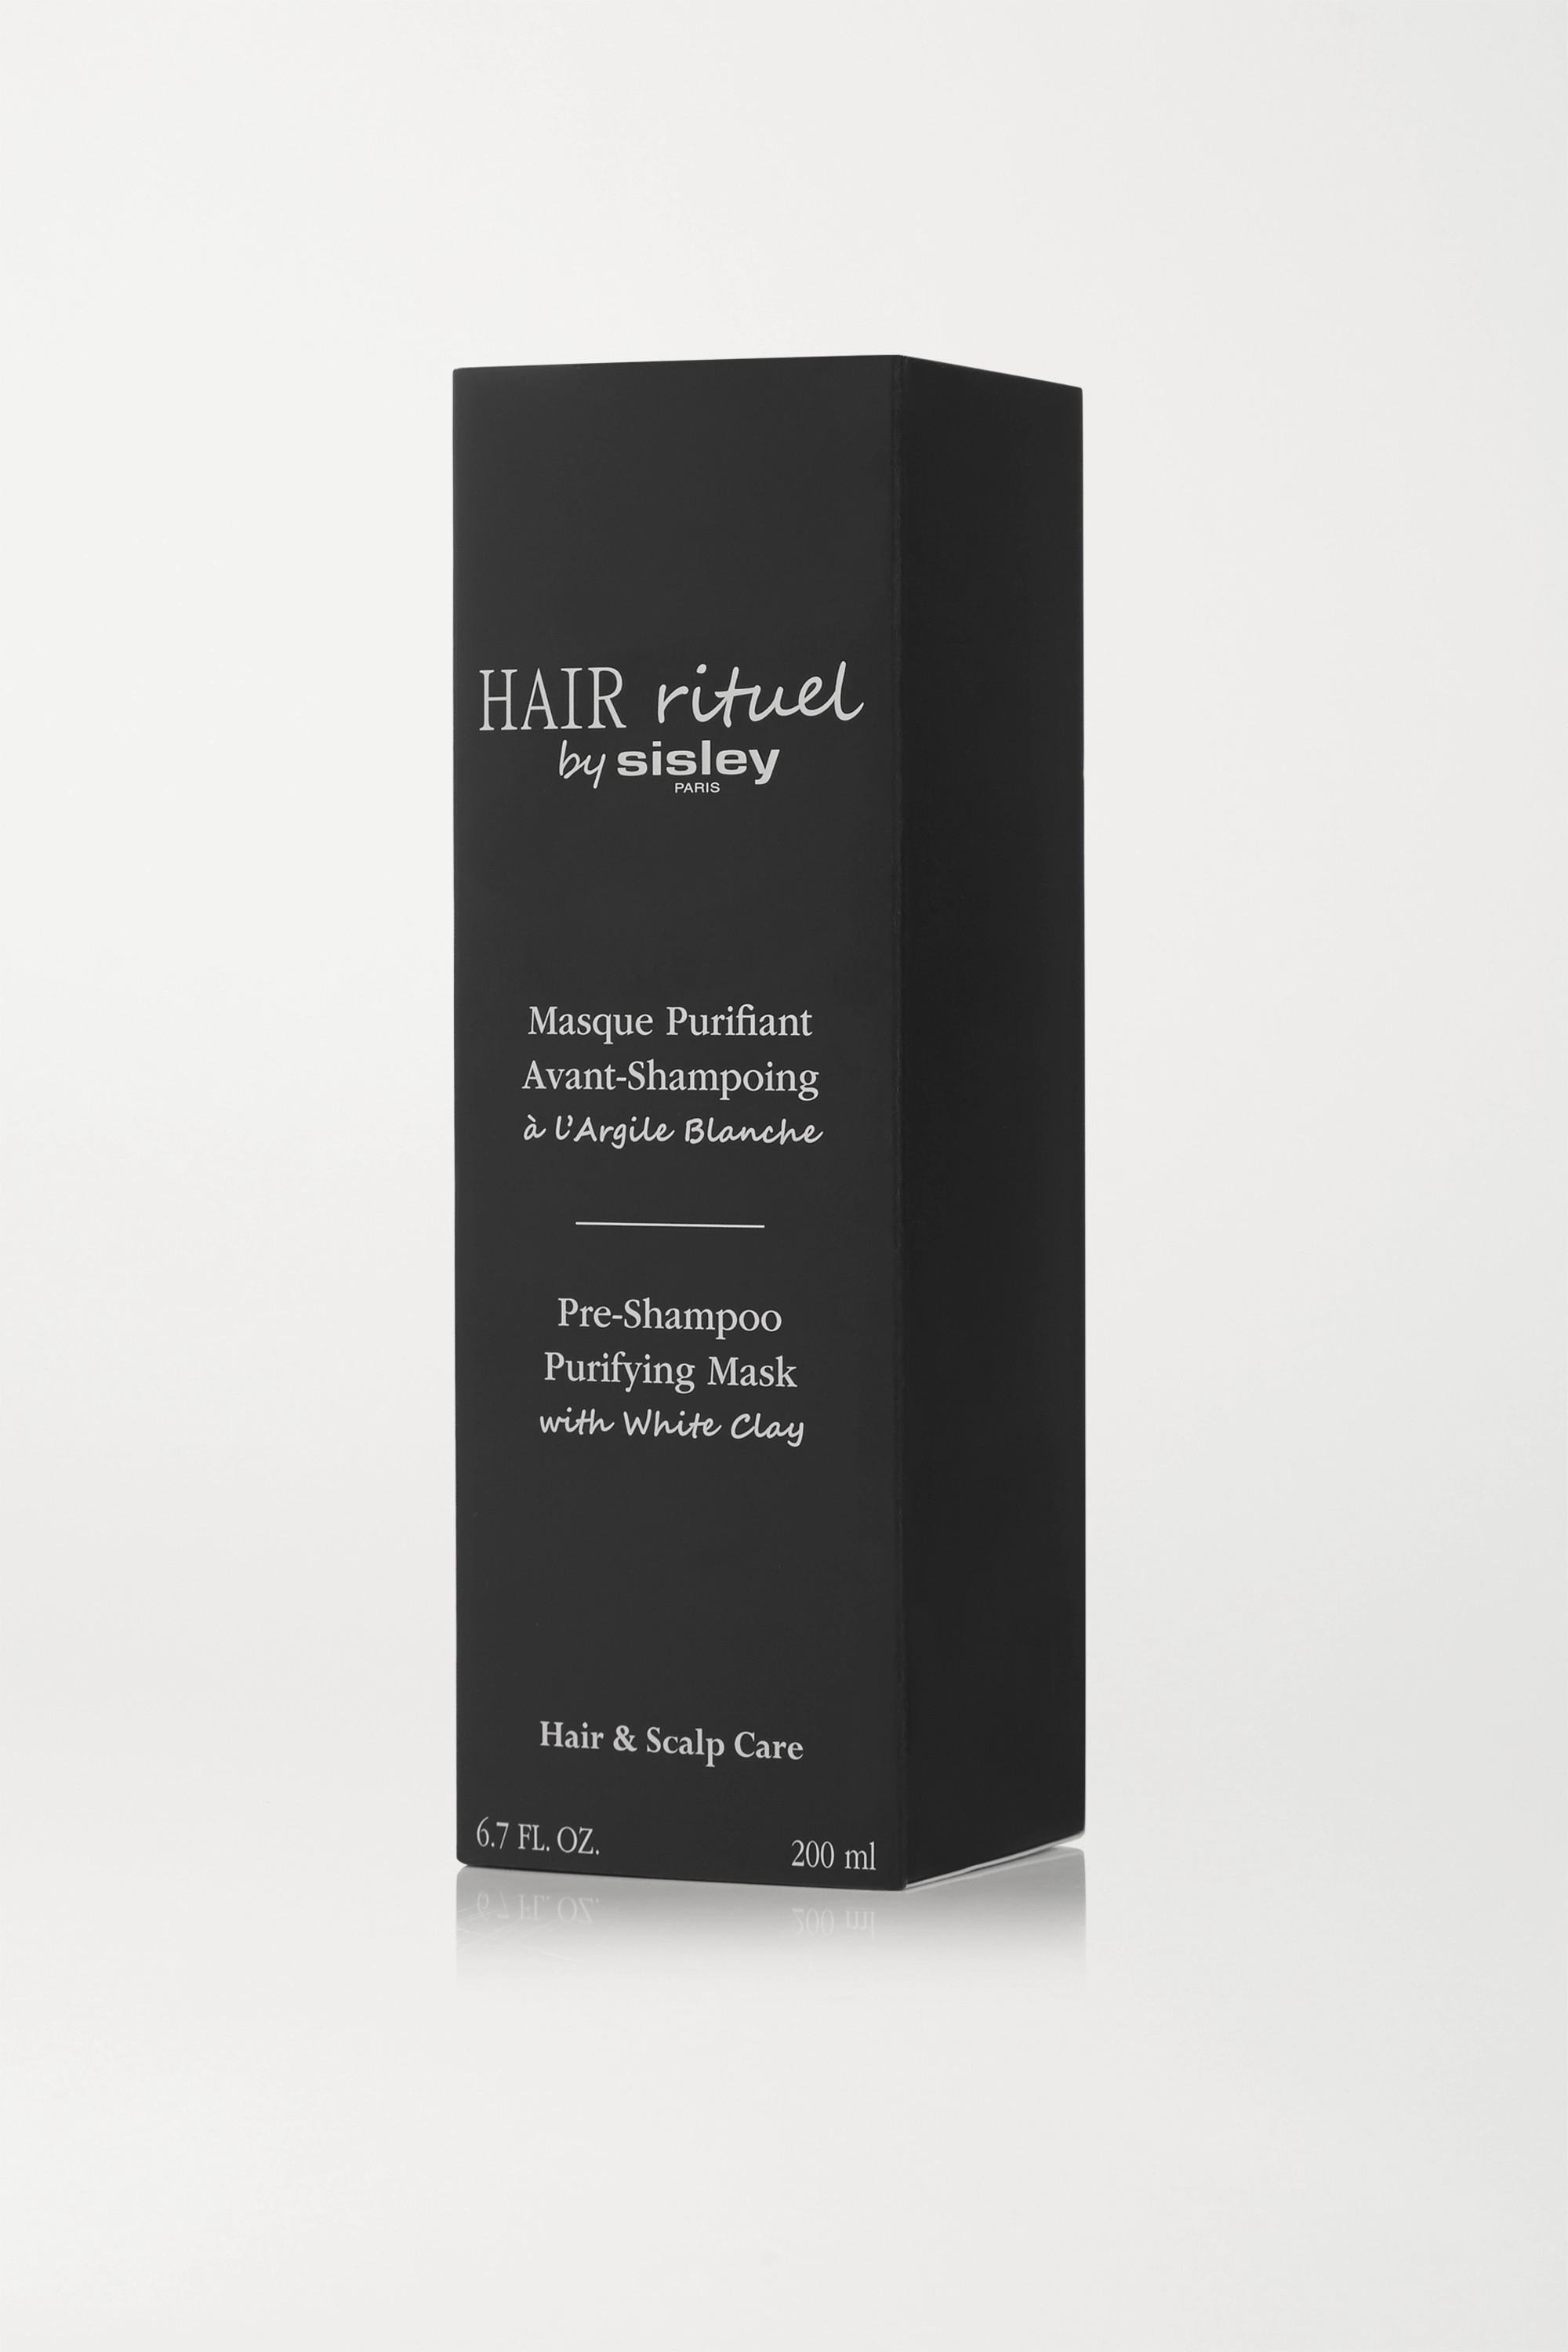 HAIR rituel by Sisley Pre-Shampoo Purifying Mask with White Clay, 200ml